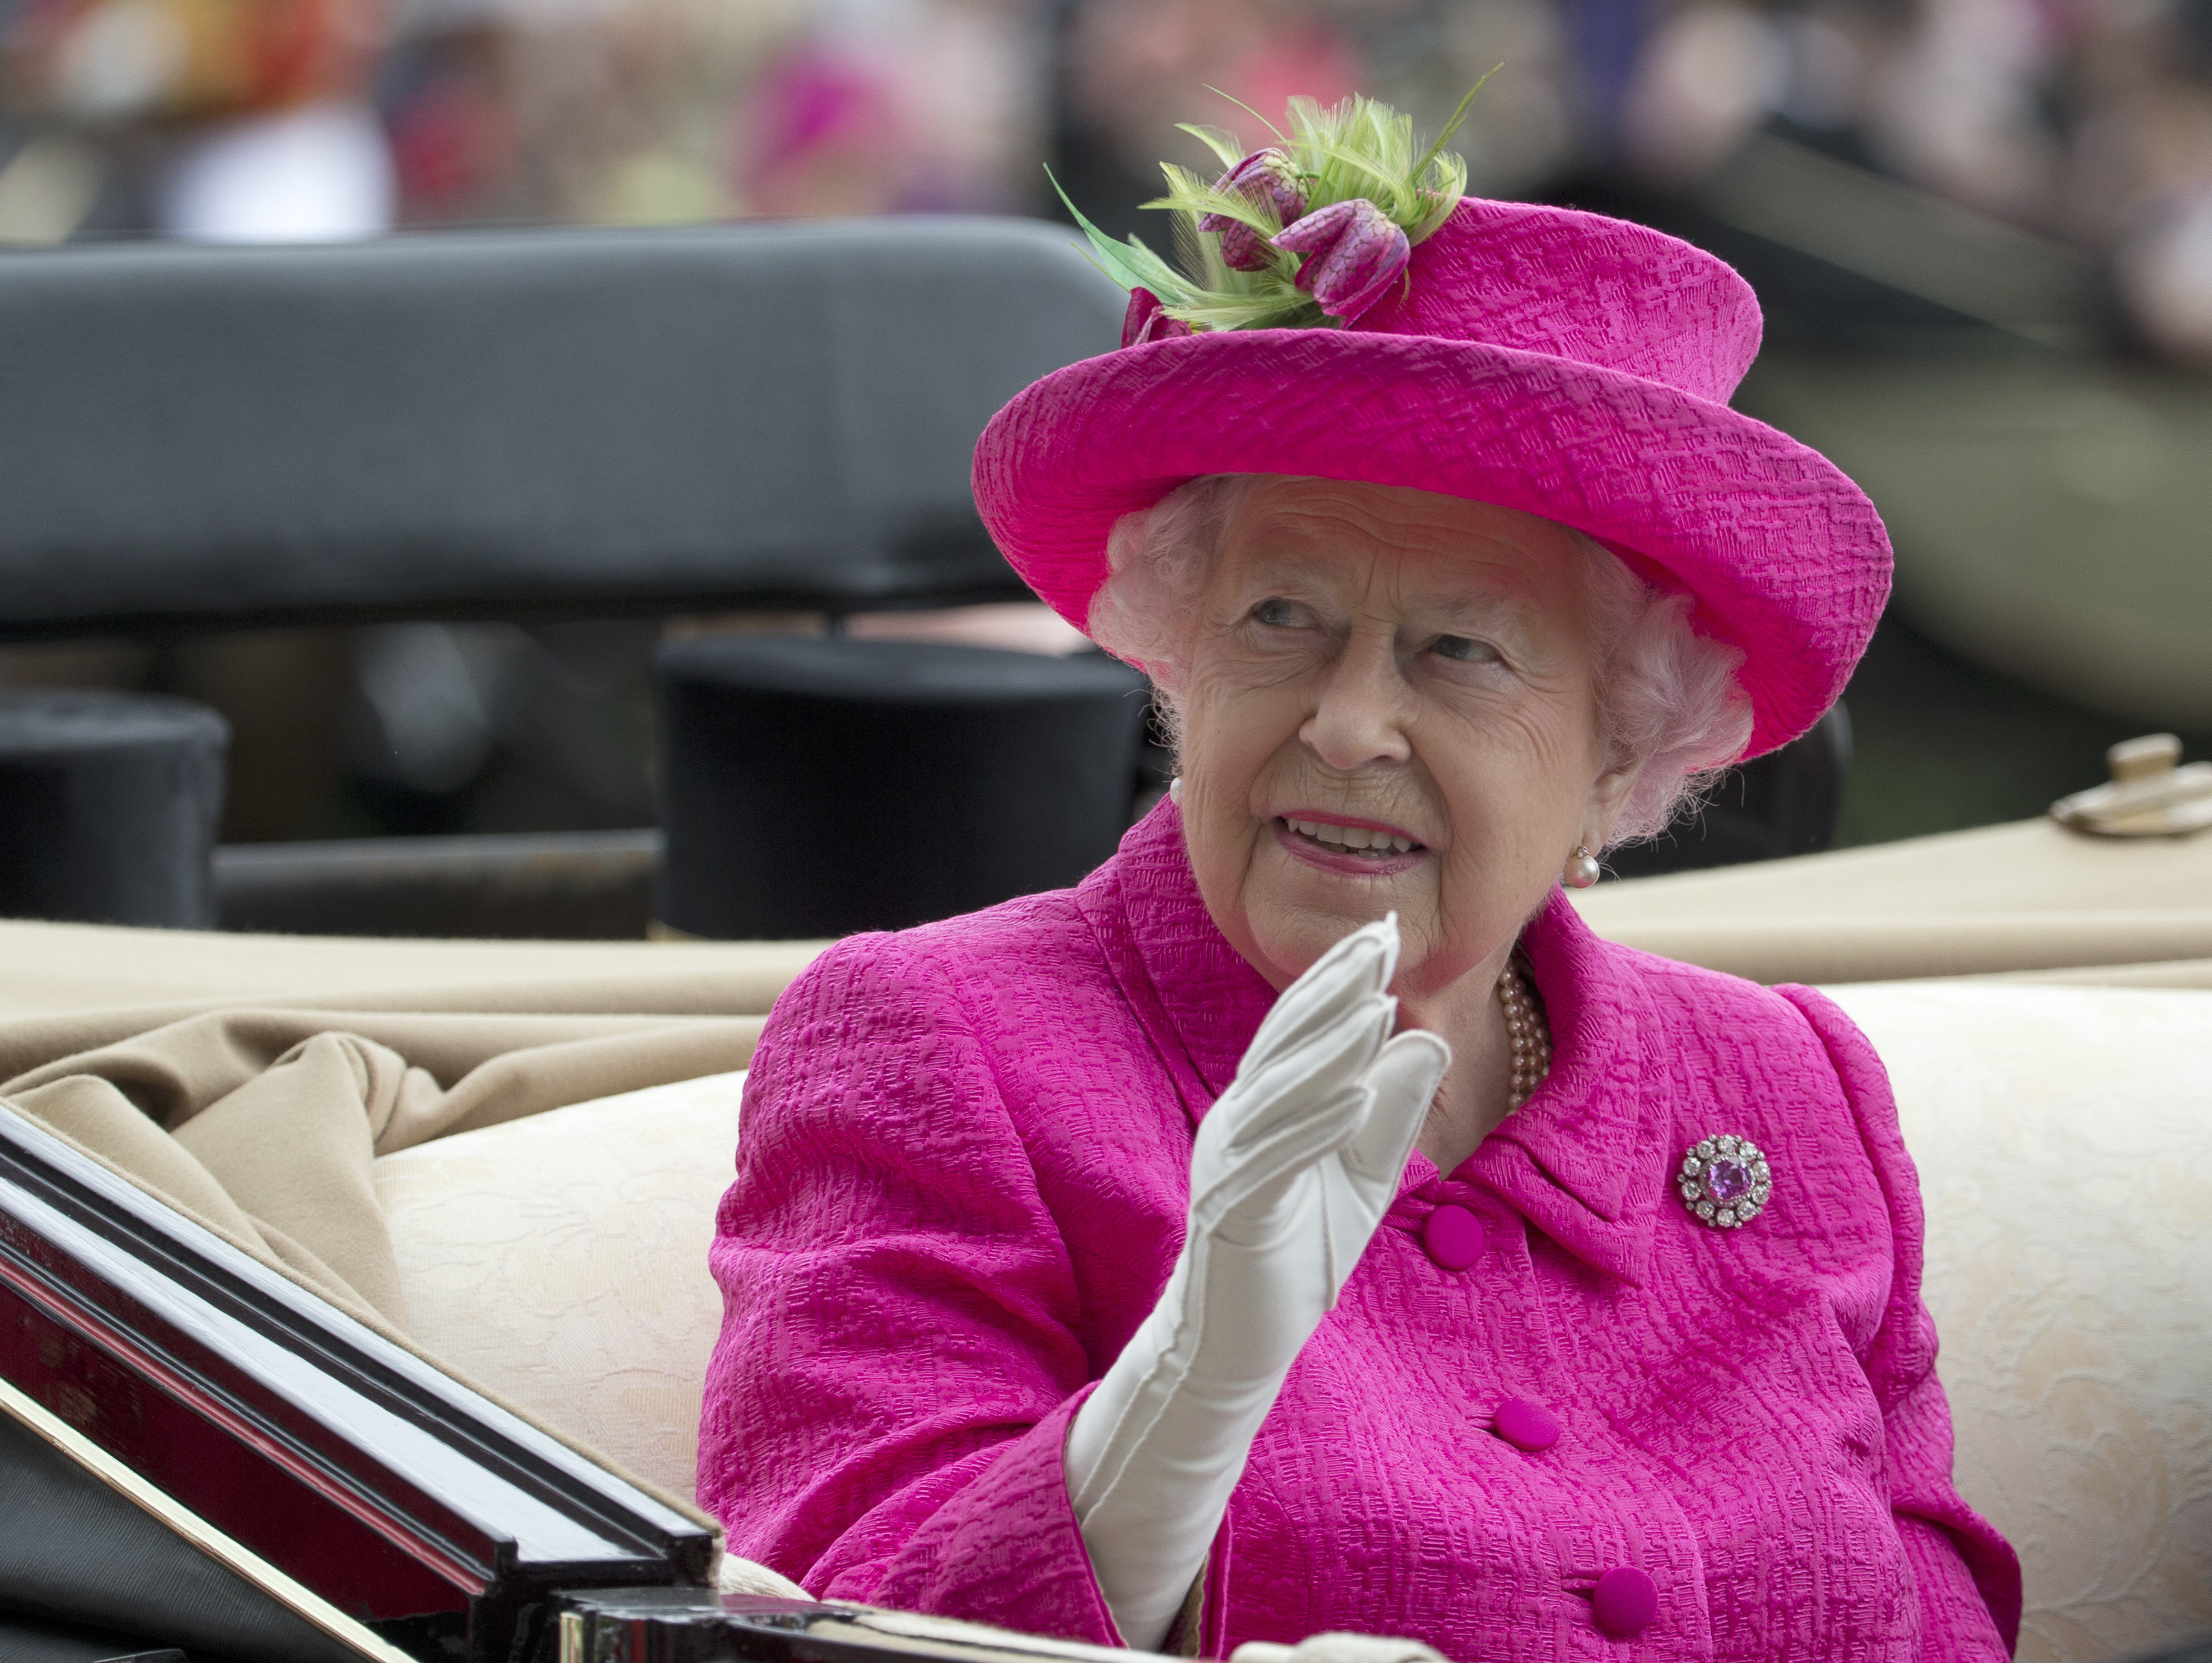 FILE - In this Thursday, June 22, 2017 file photo, Britain's Queen Elizabeth II waves to the crowd as she arrives by open carriage into the parade ring on the third day of the Royal Ascot horse race meeting, which is traditionally known as Ladies Day, in Ascot, England. Newly leaked papers have revealed that Queen Elizabeth II has placed some of her private money into offshore tax havens. According to records obtained by the International Consortium of Journalists, the queen,Äos investment managers have placed roughly 10 million pounds ($13 million) in offshore portfolios in the Cayman Islands and Bermuda. (AP Photo/Alastair Grant, File)